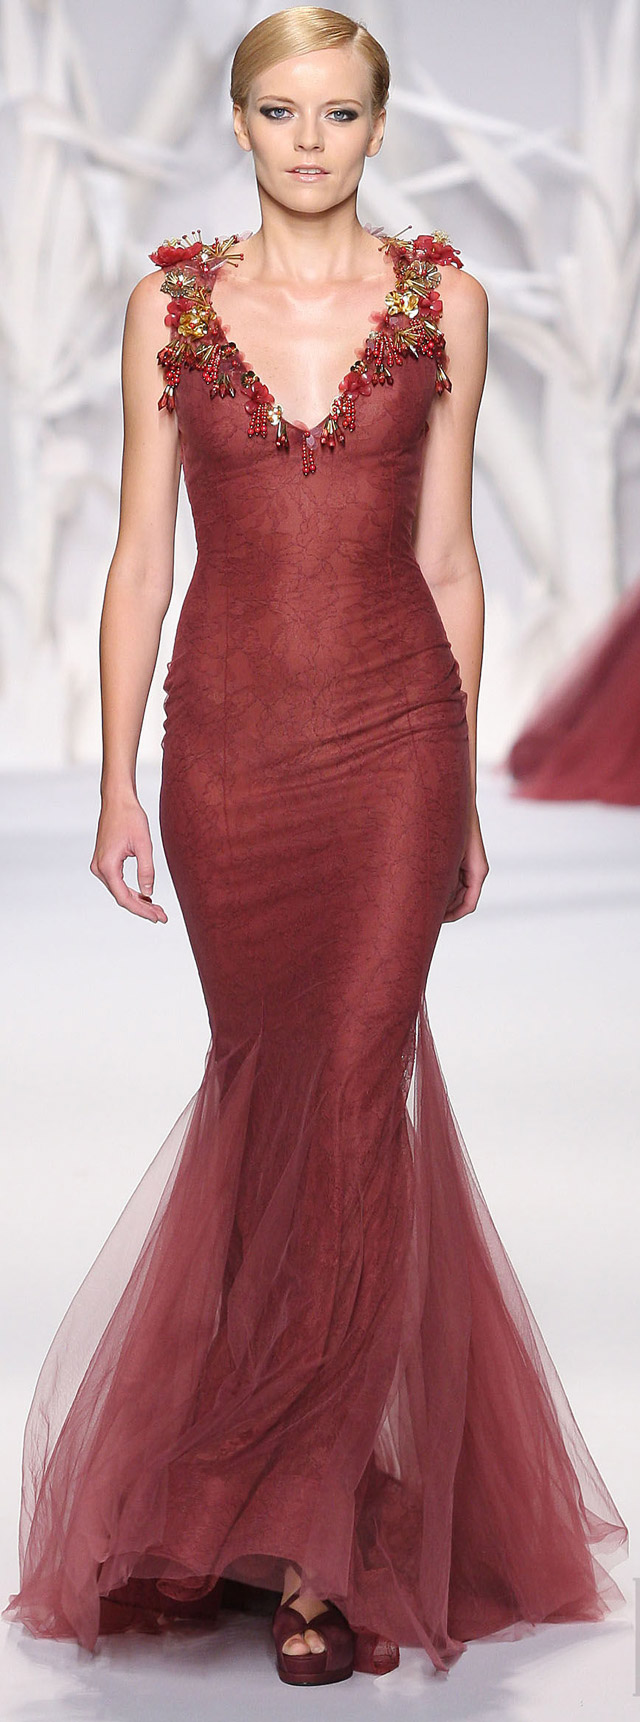 Abed Mahfouz Haute Couture Fall-Winter 2013-2014 (2)